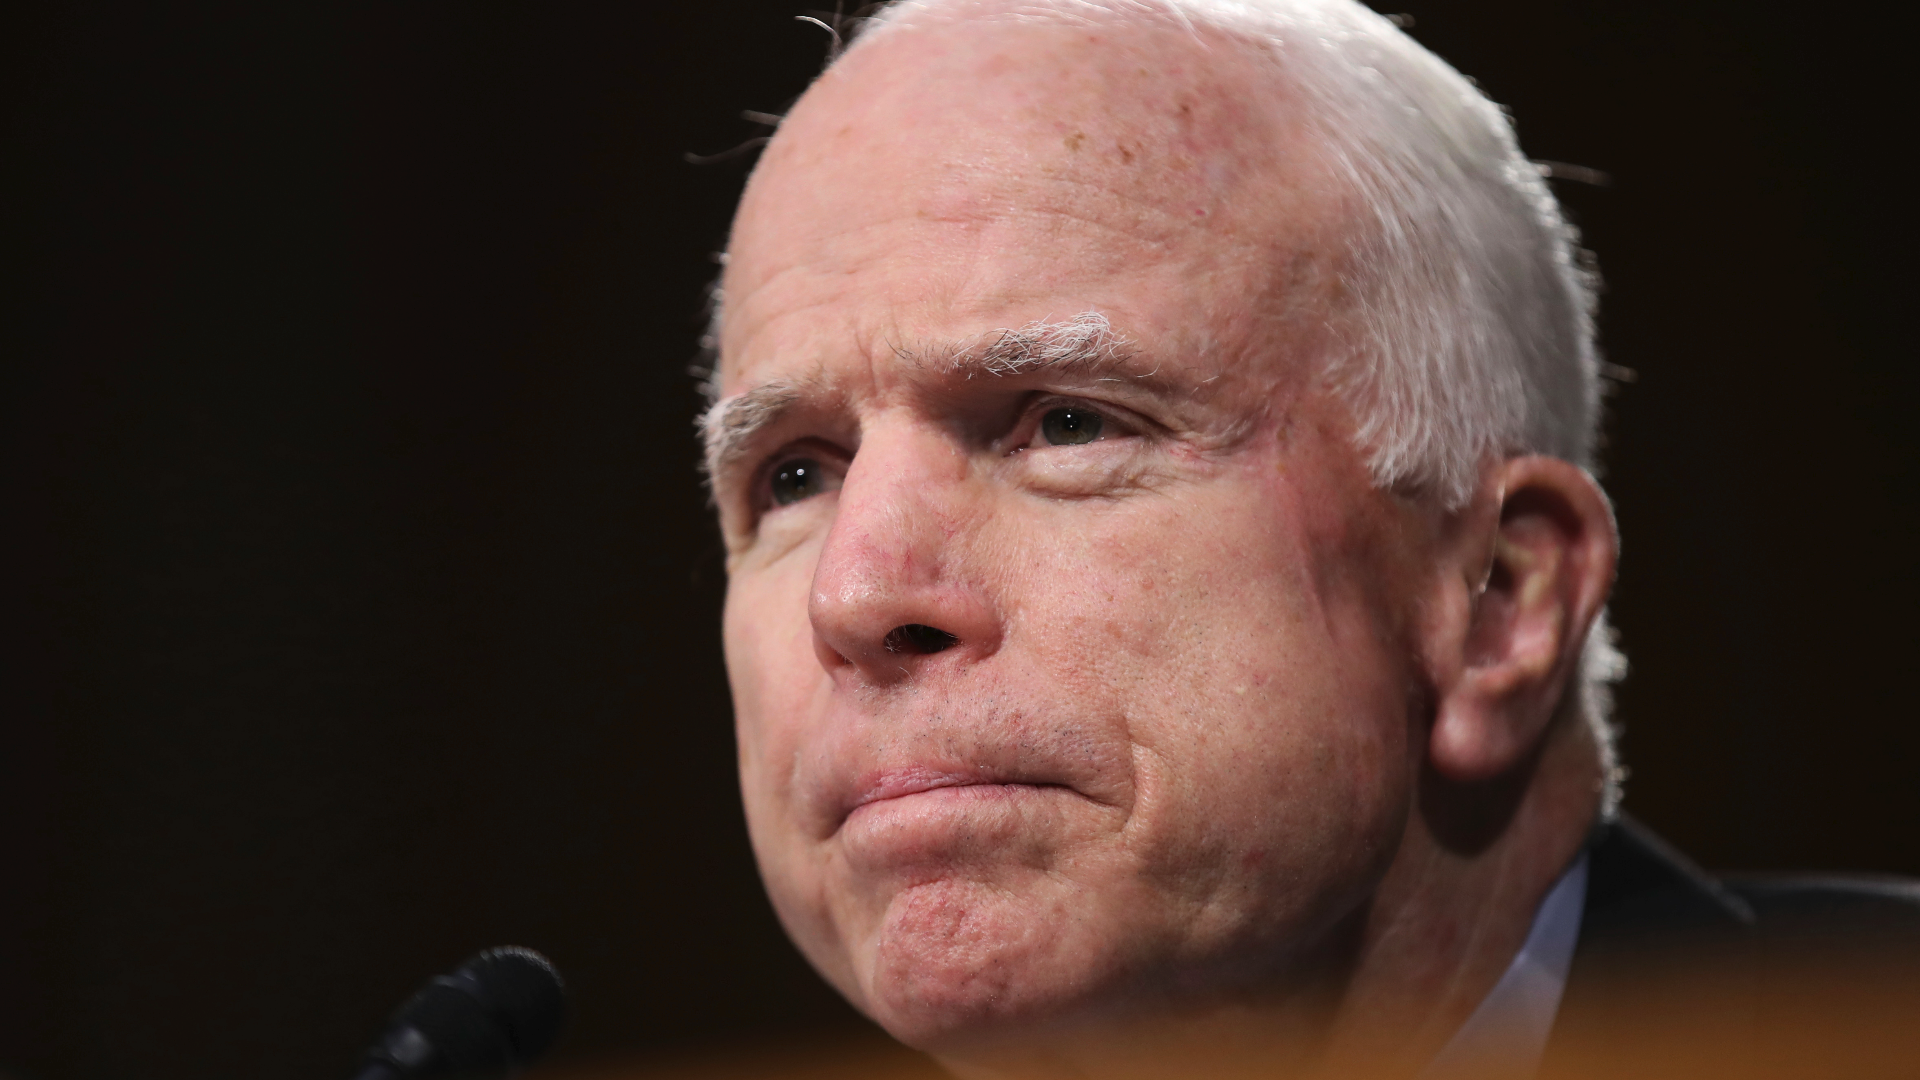 John McCain just systematically dismantled Donald Trump's entire worldview